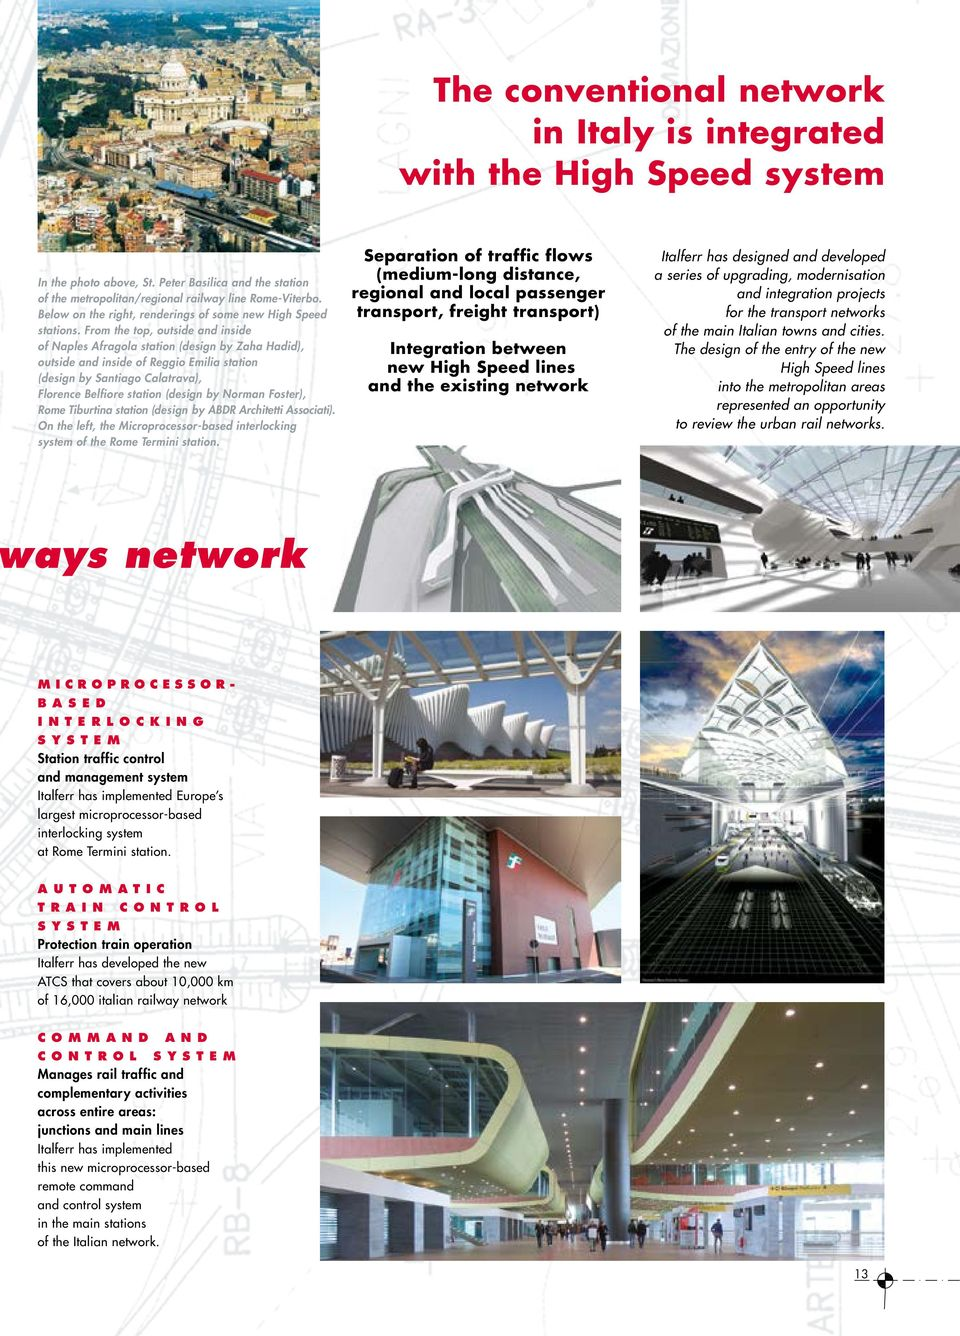 From the top, outside and inside of Naples Afragola station (design by Zaha Hadid), outside and inside of Reggio Emilia station (design by Santiago Calatrava), Florence Belfiore station (design by